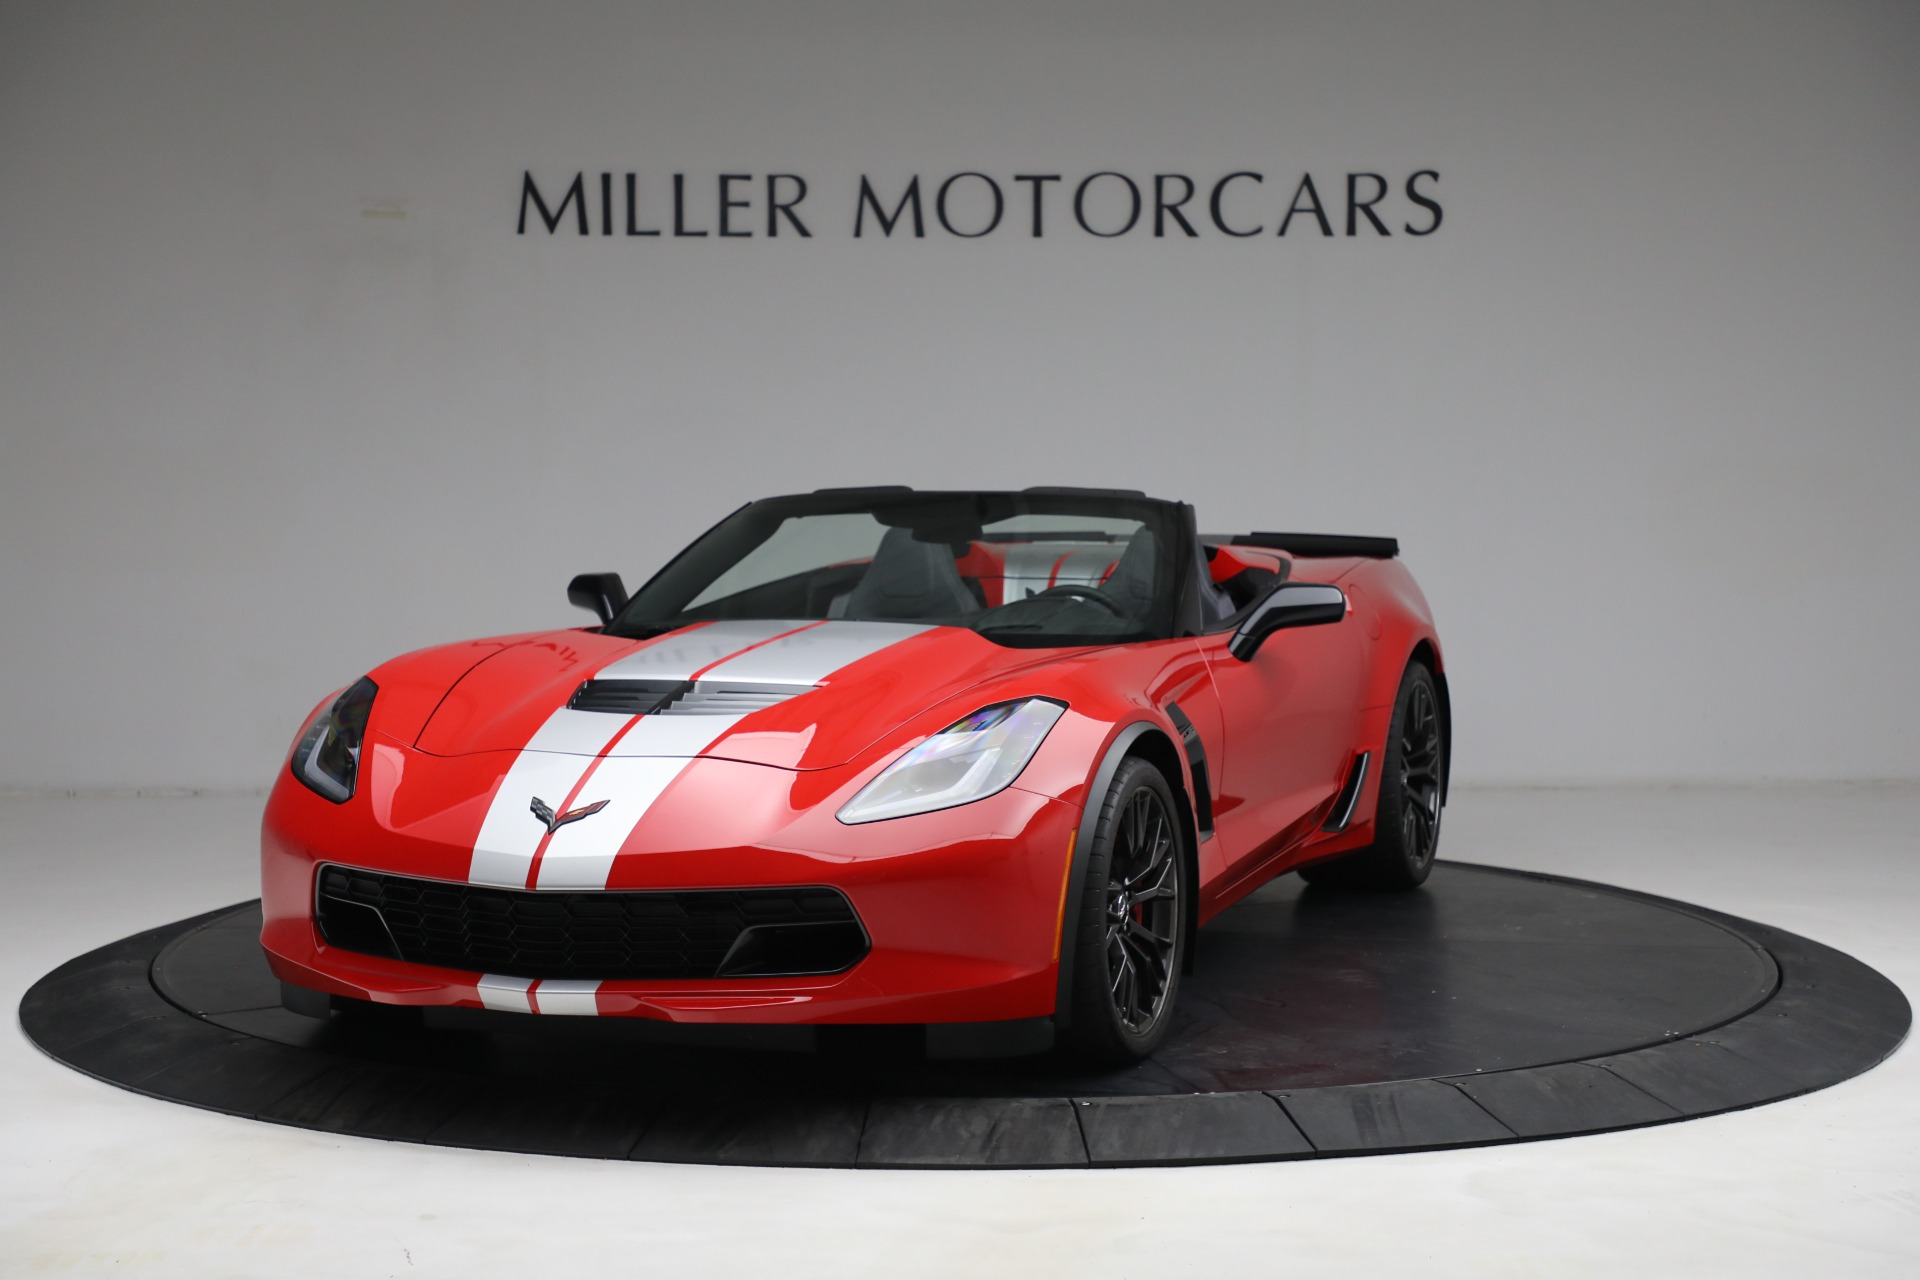 Used 2015 Chevrolet Corvette Z06 for sale $89,900 at Aston Martin of Greenwich in Greenwich CT 06830 1